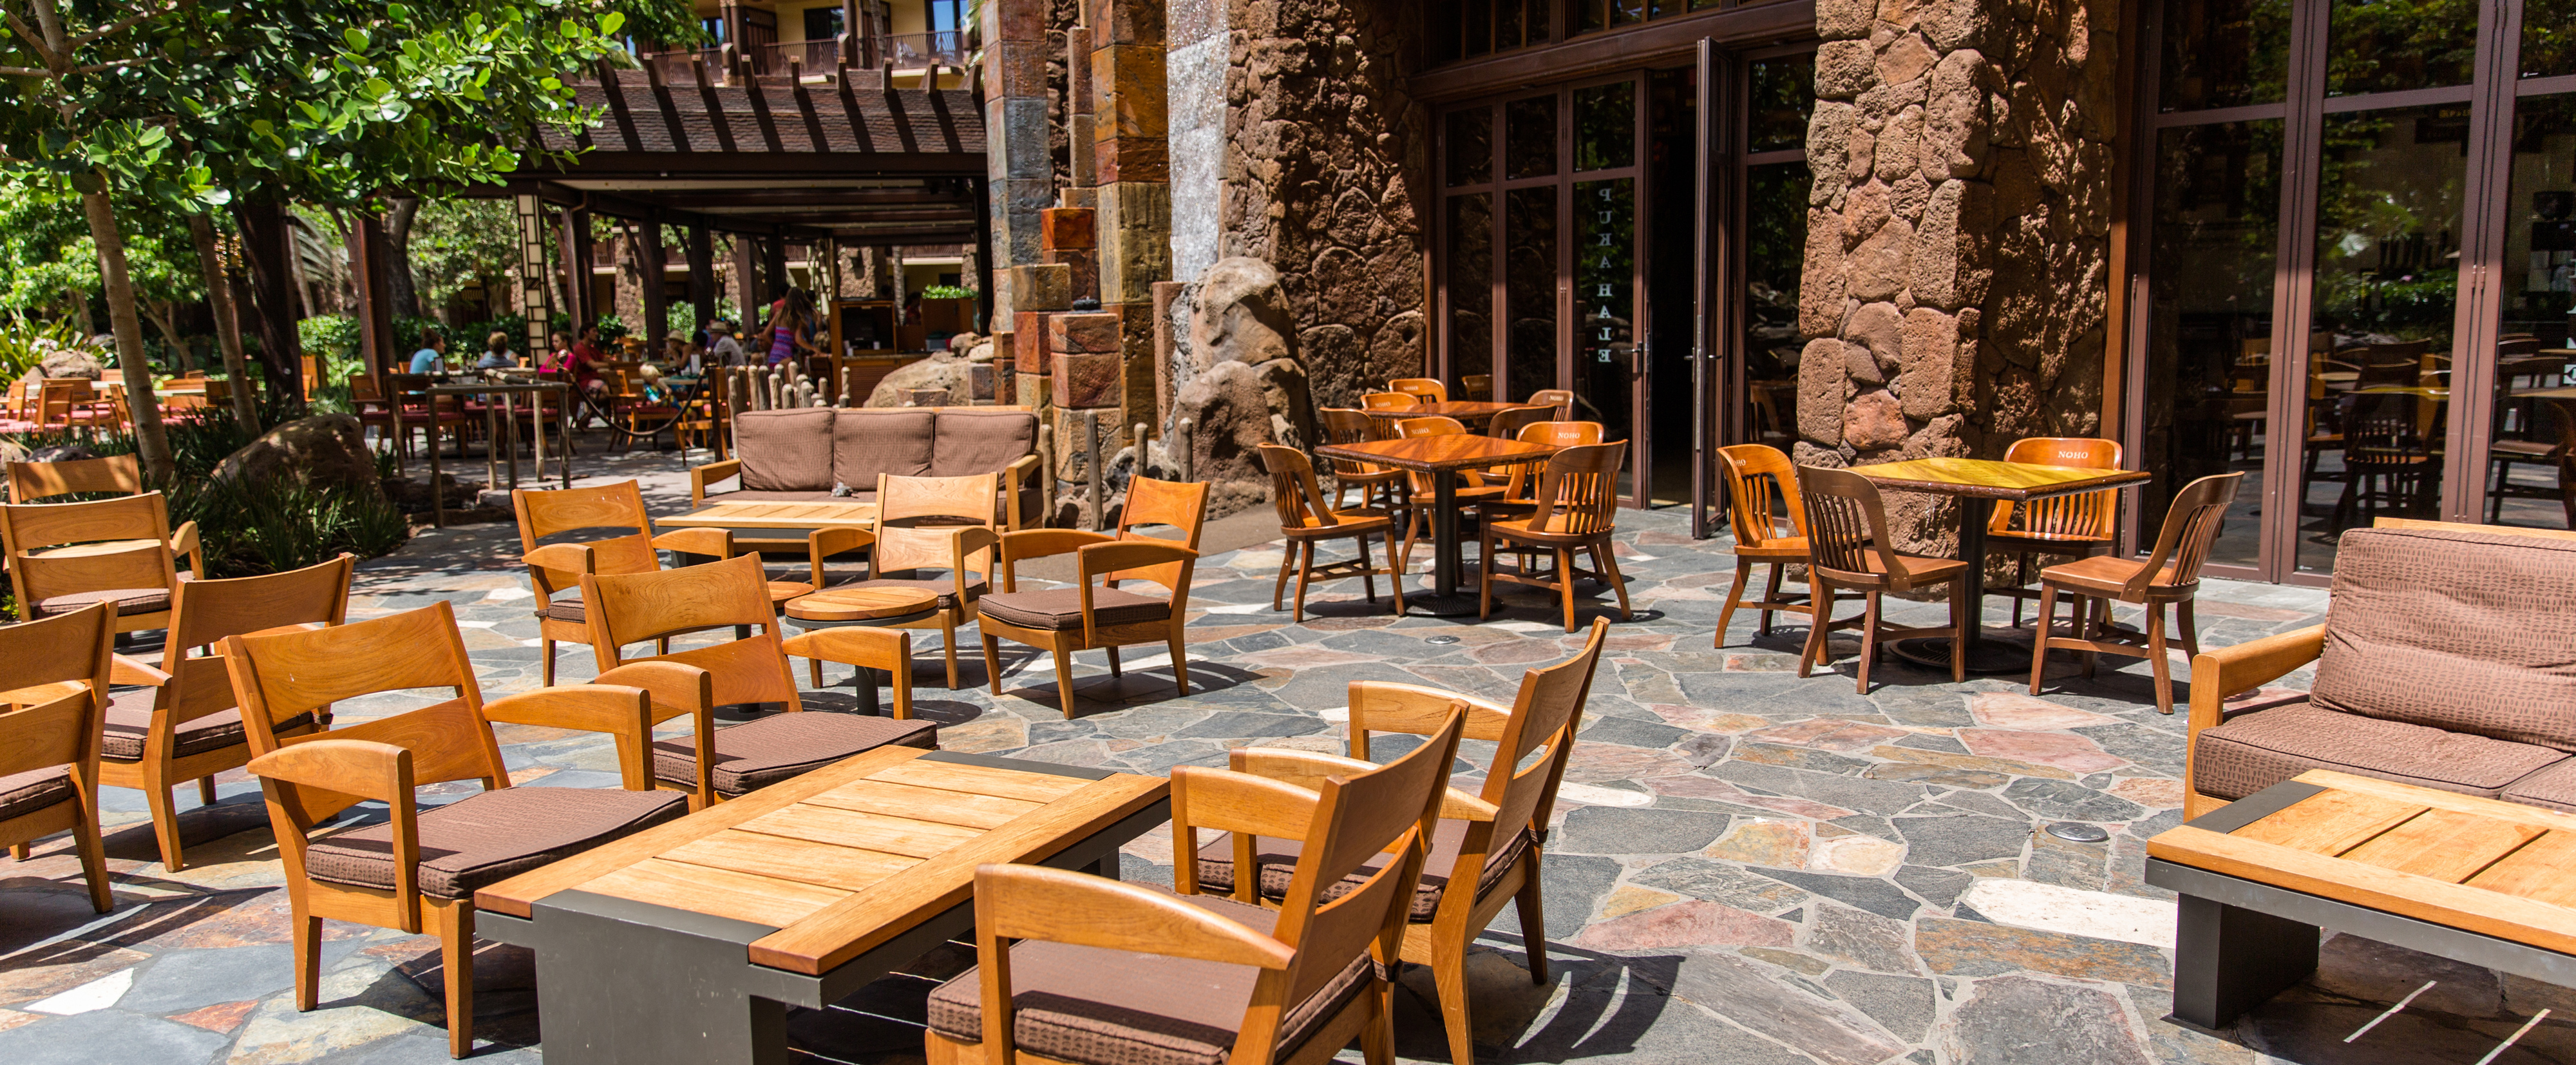 Outdoor tables and 2 couches on a flagstone-paved patio